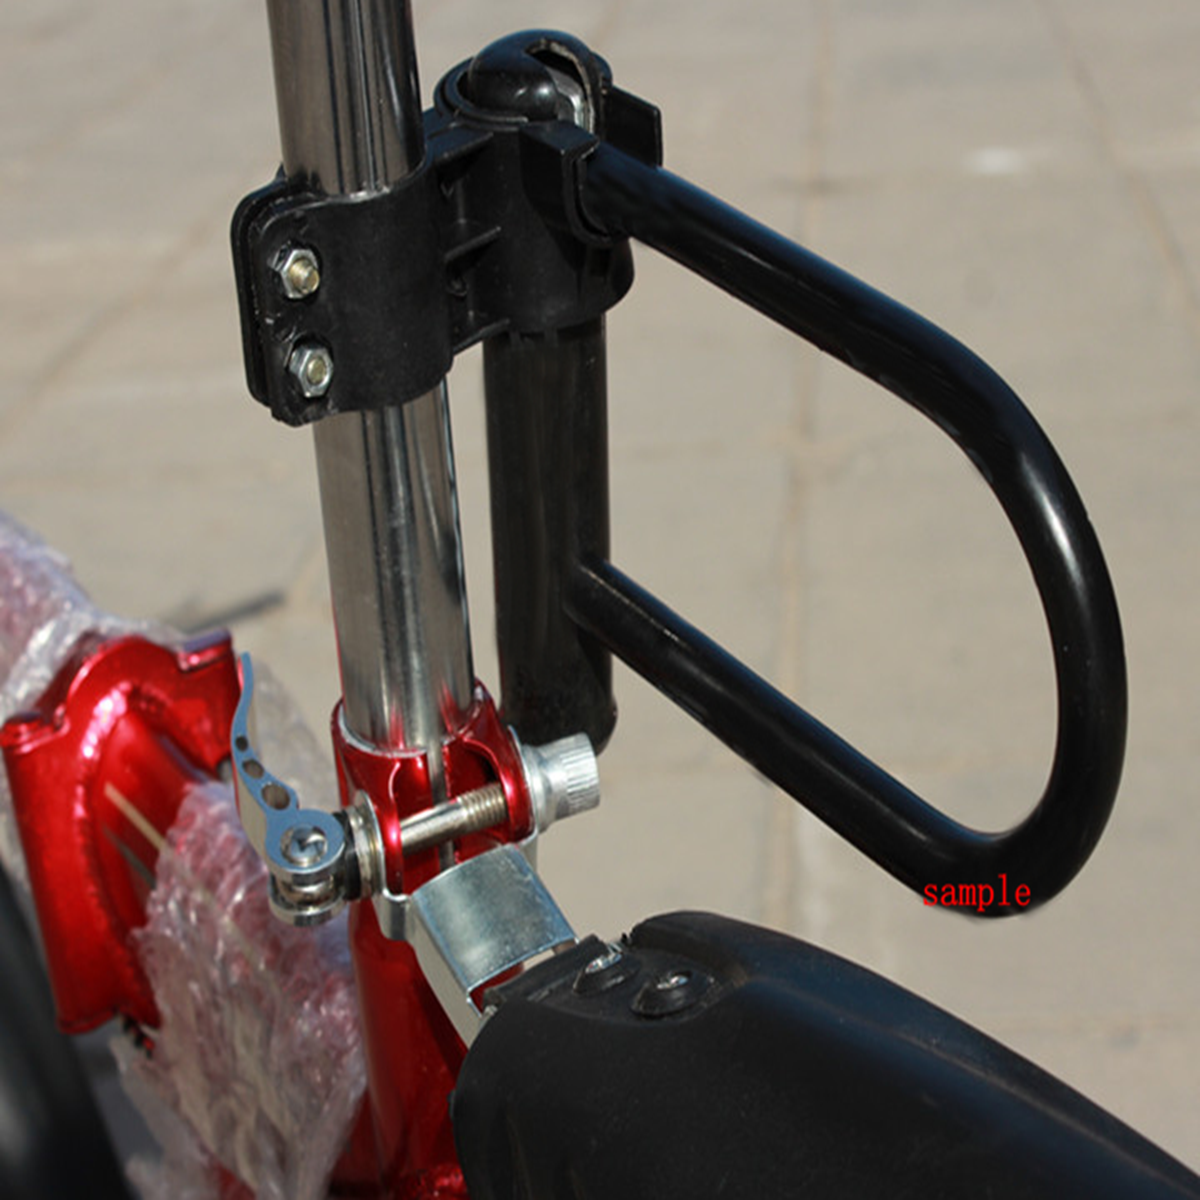 universal motorcycle bike bicycle u lock security anti theft lock bracket 20cm ebay. Black Bedroom Furniture Sets. Home Design Ideas